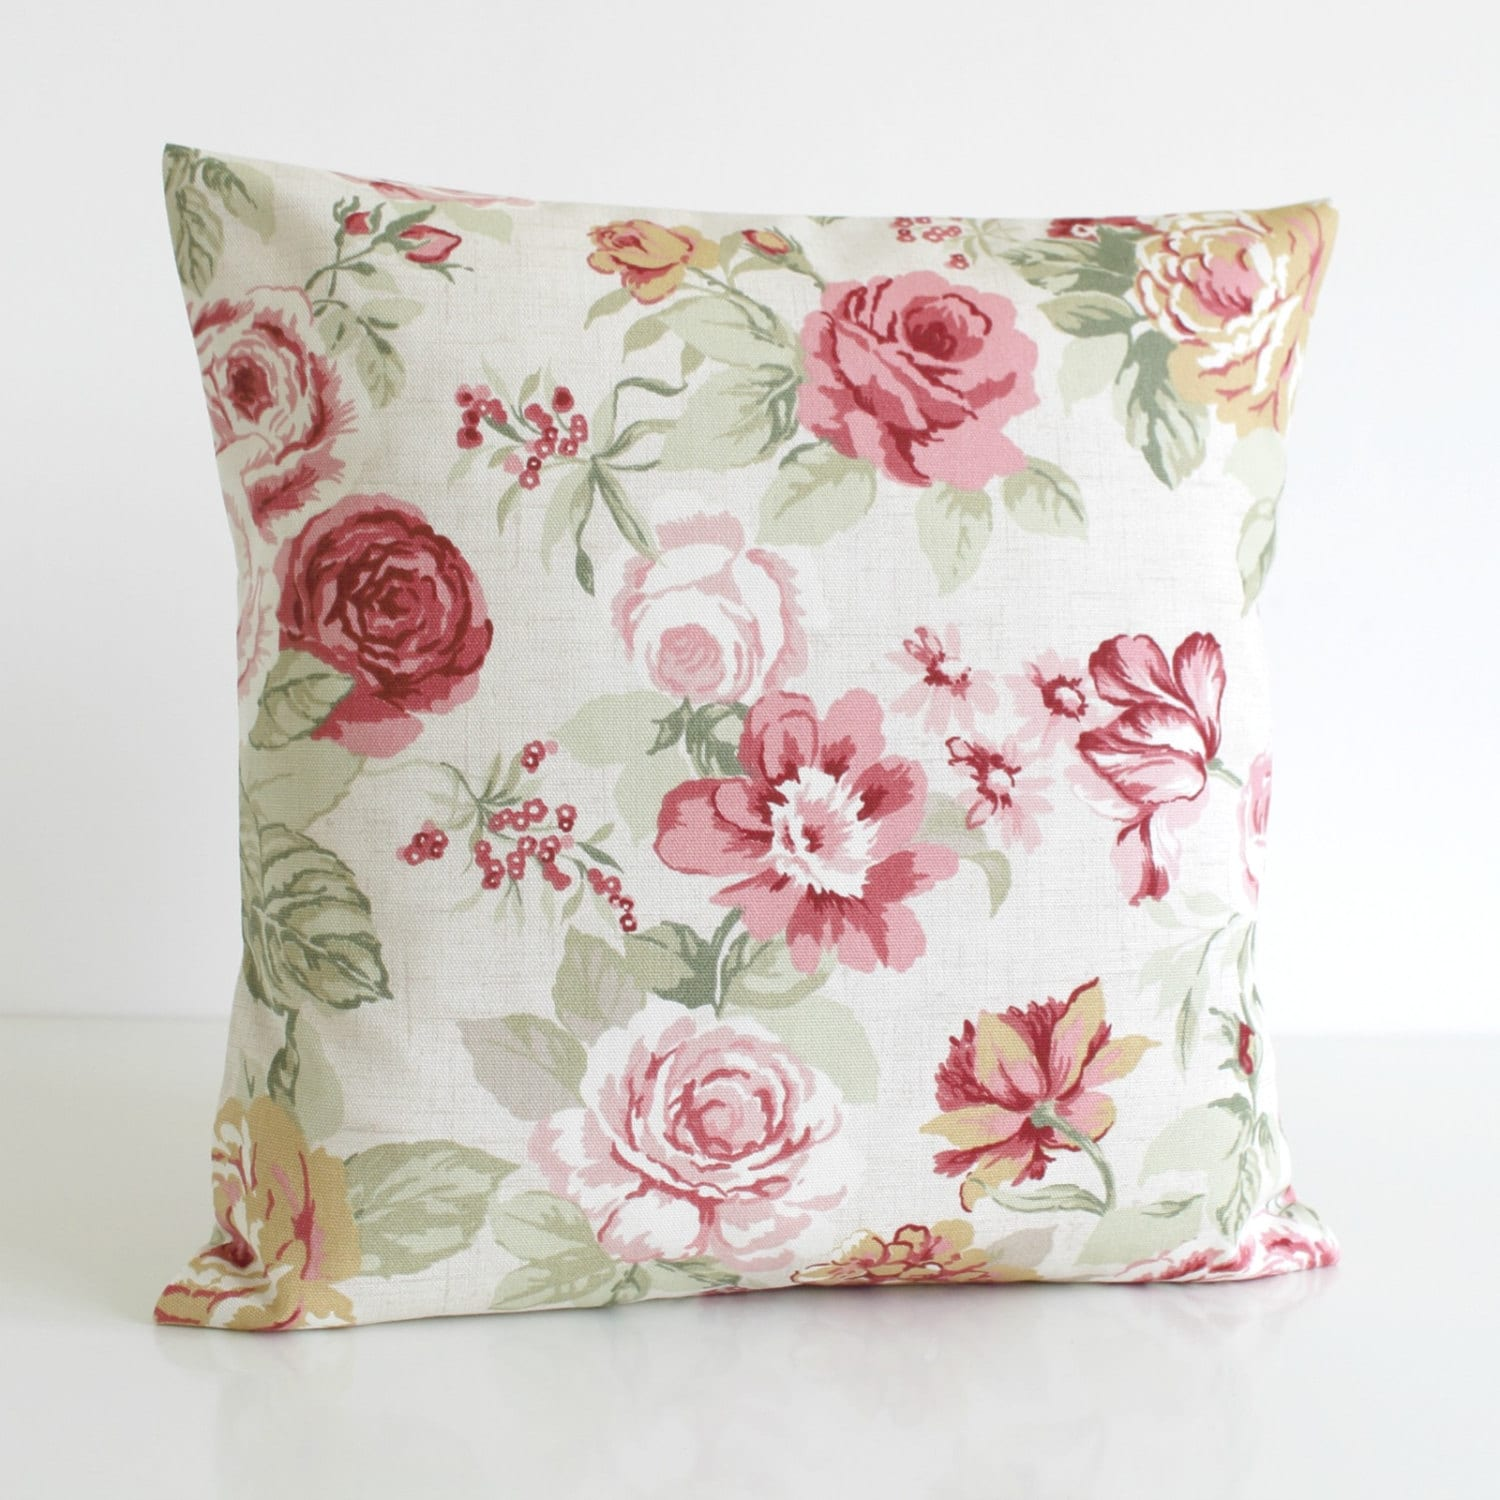 Shabby Chic Decorative Pillow Cover Floral Cushion by CoupleHome